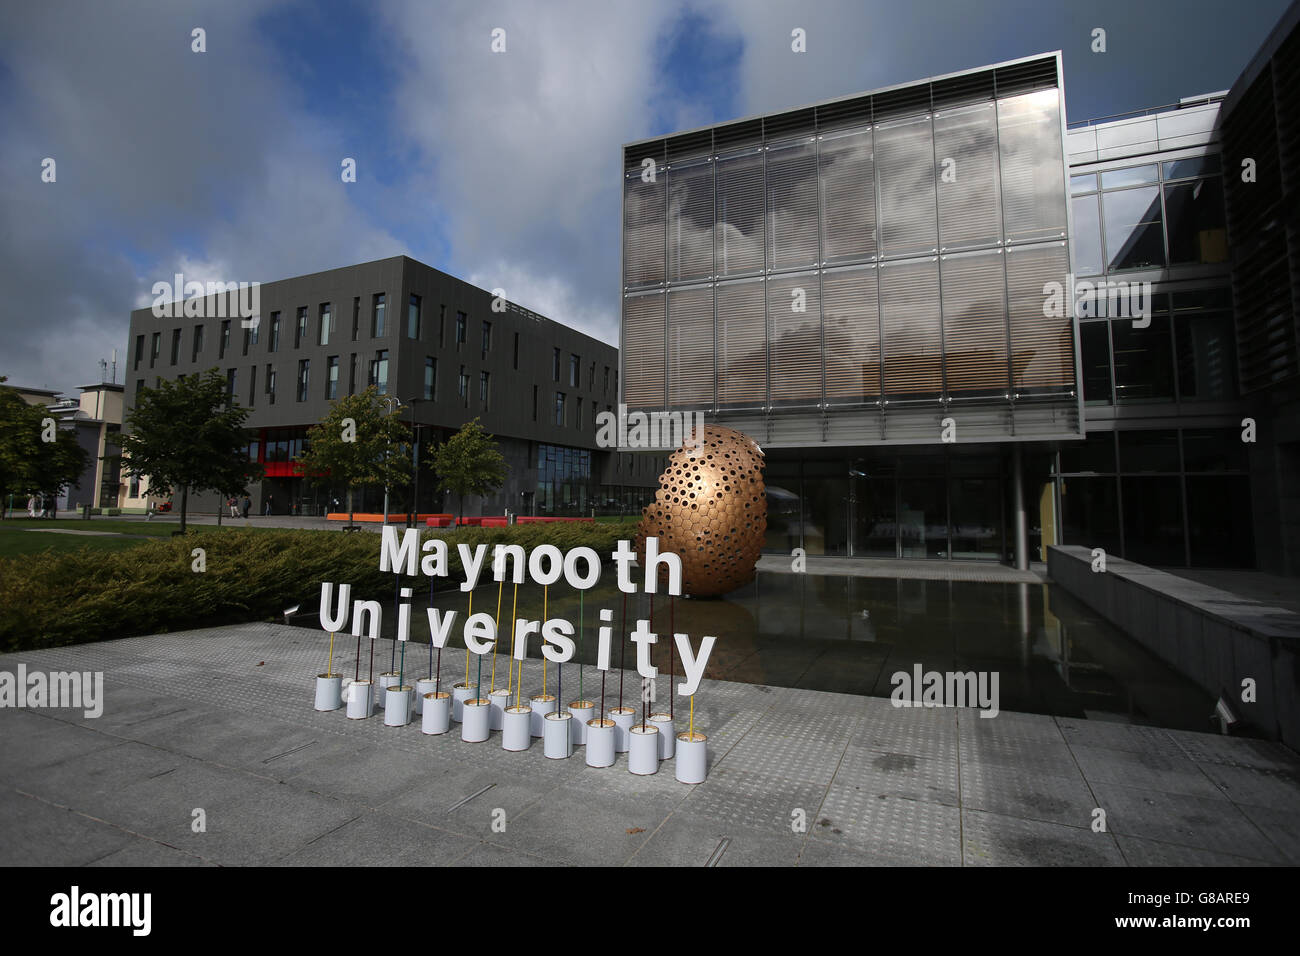 NUI Maynooth University stock - Stock Image